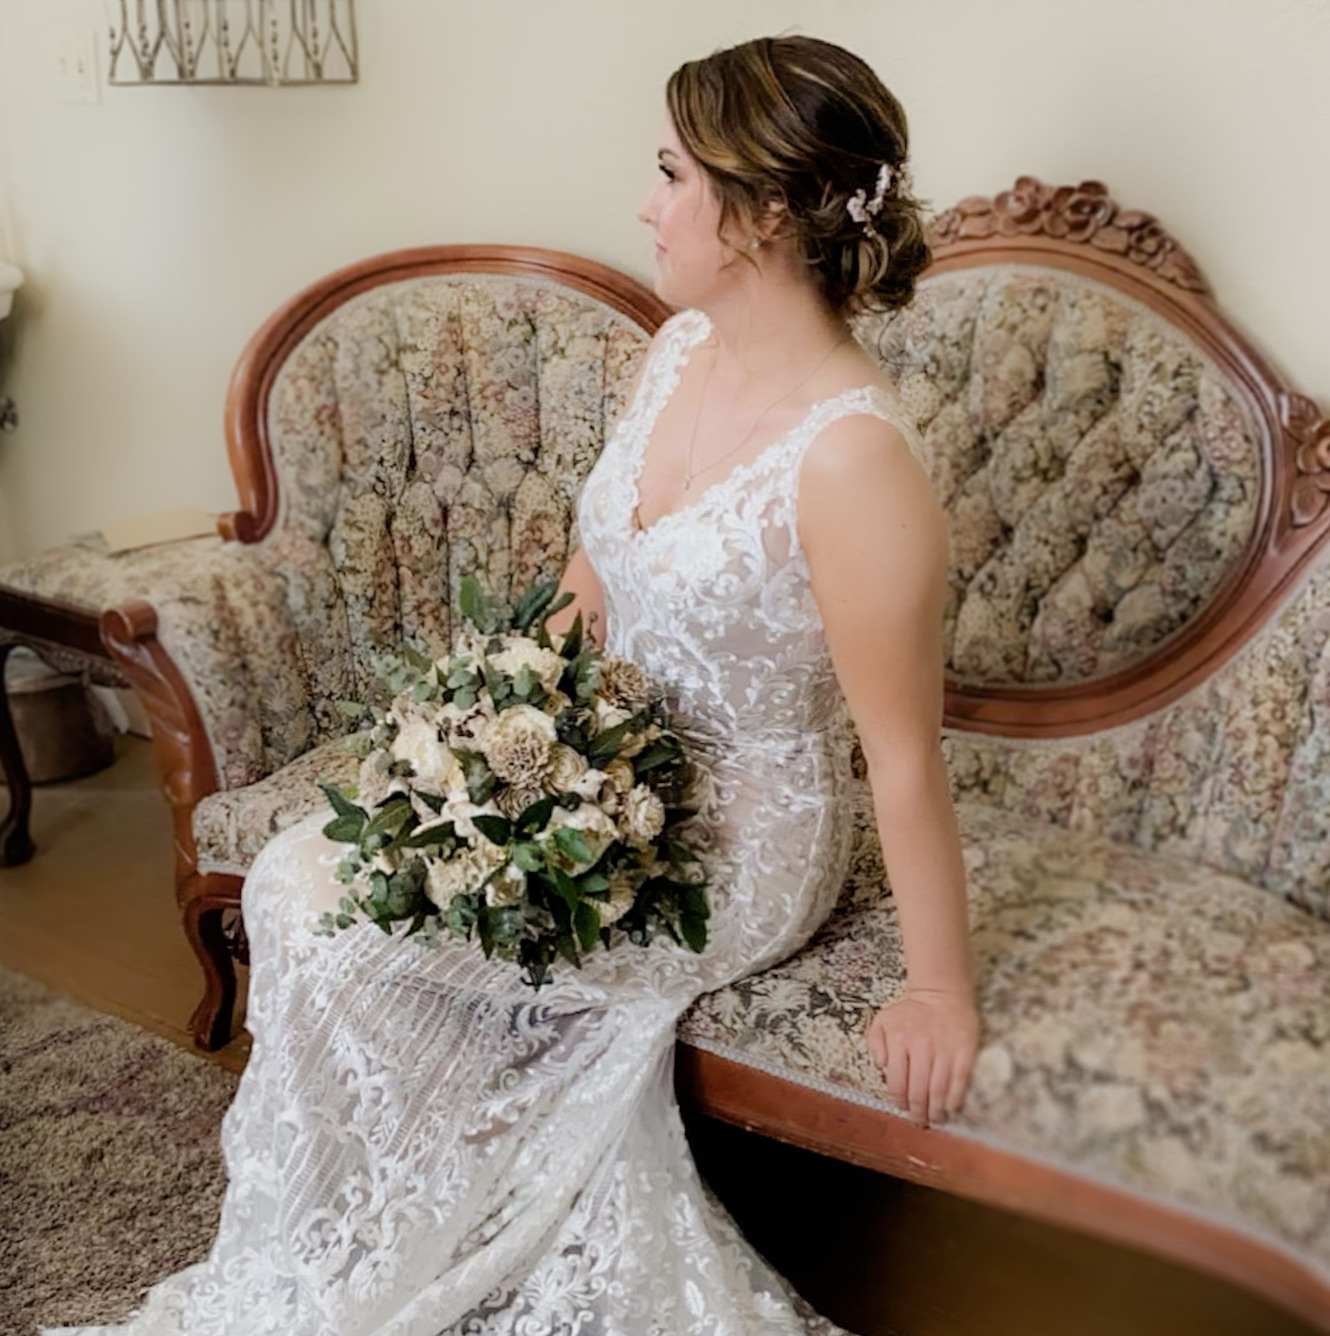 Reflections on running a wedding business in the midst of a pandemic.